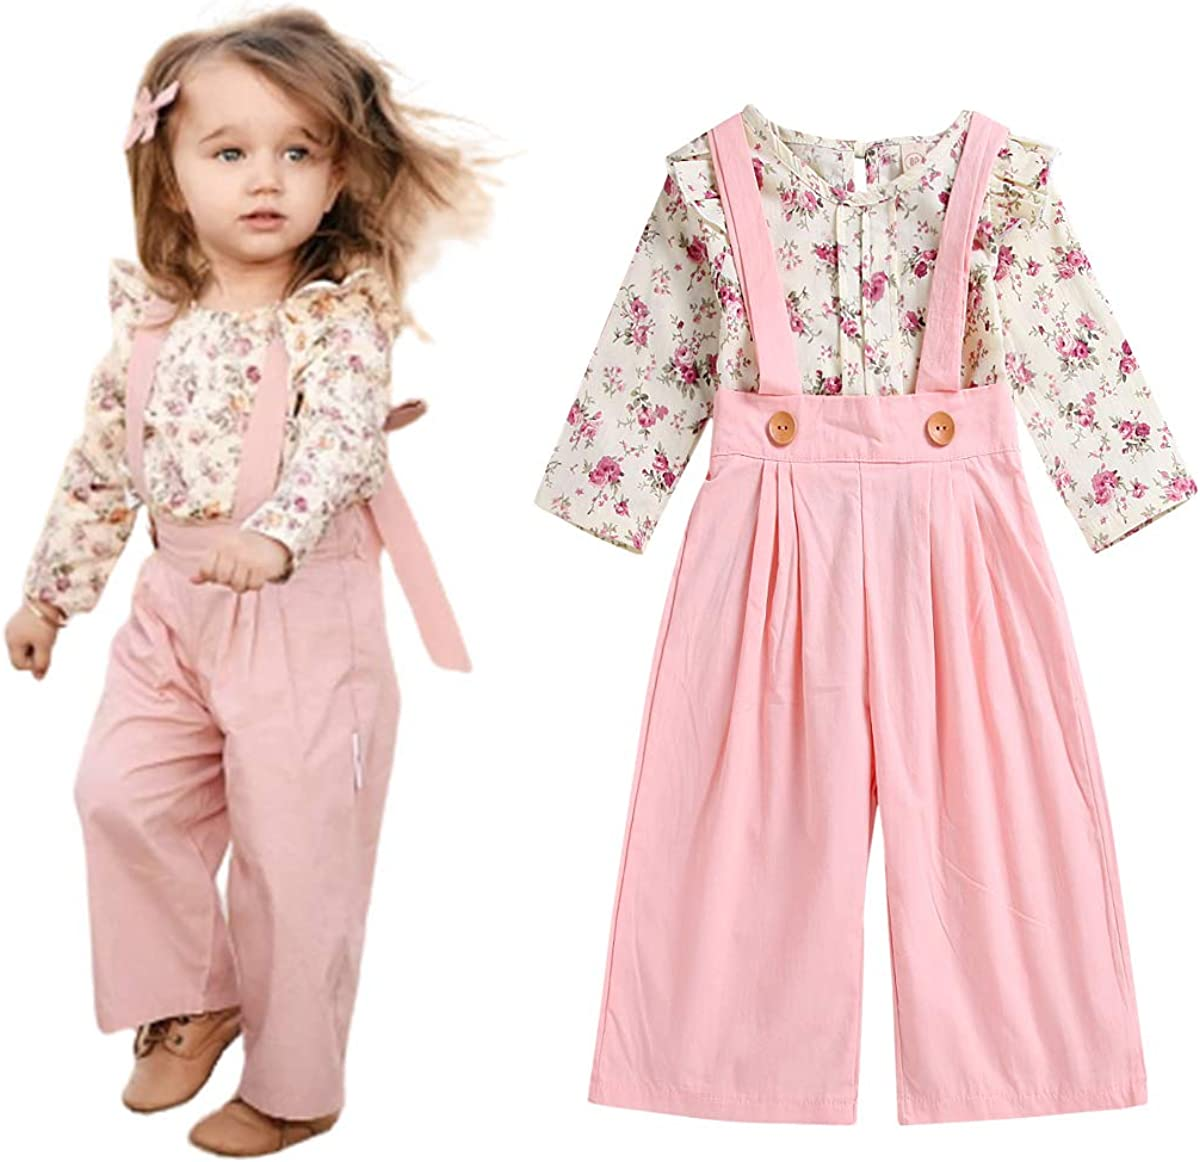 Toddler Baby 5% OFF Girl Skirt Sets Ruffle Overalls Outfit Floral Ranking TOP19